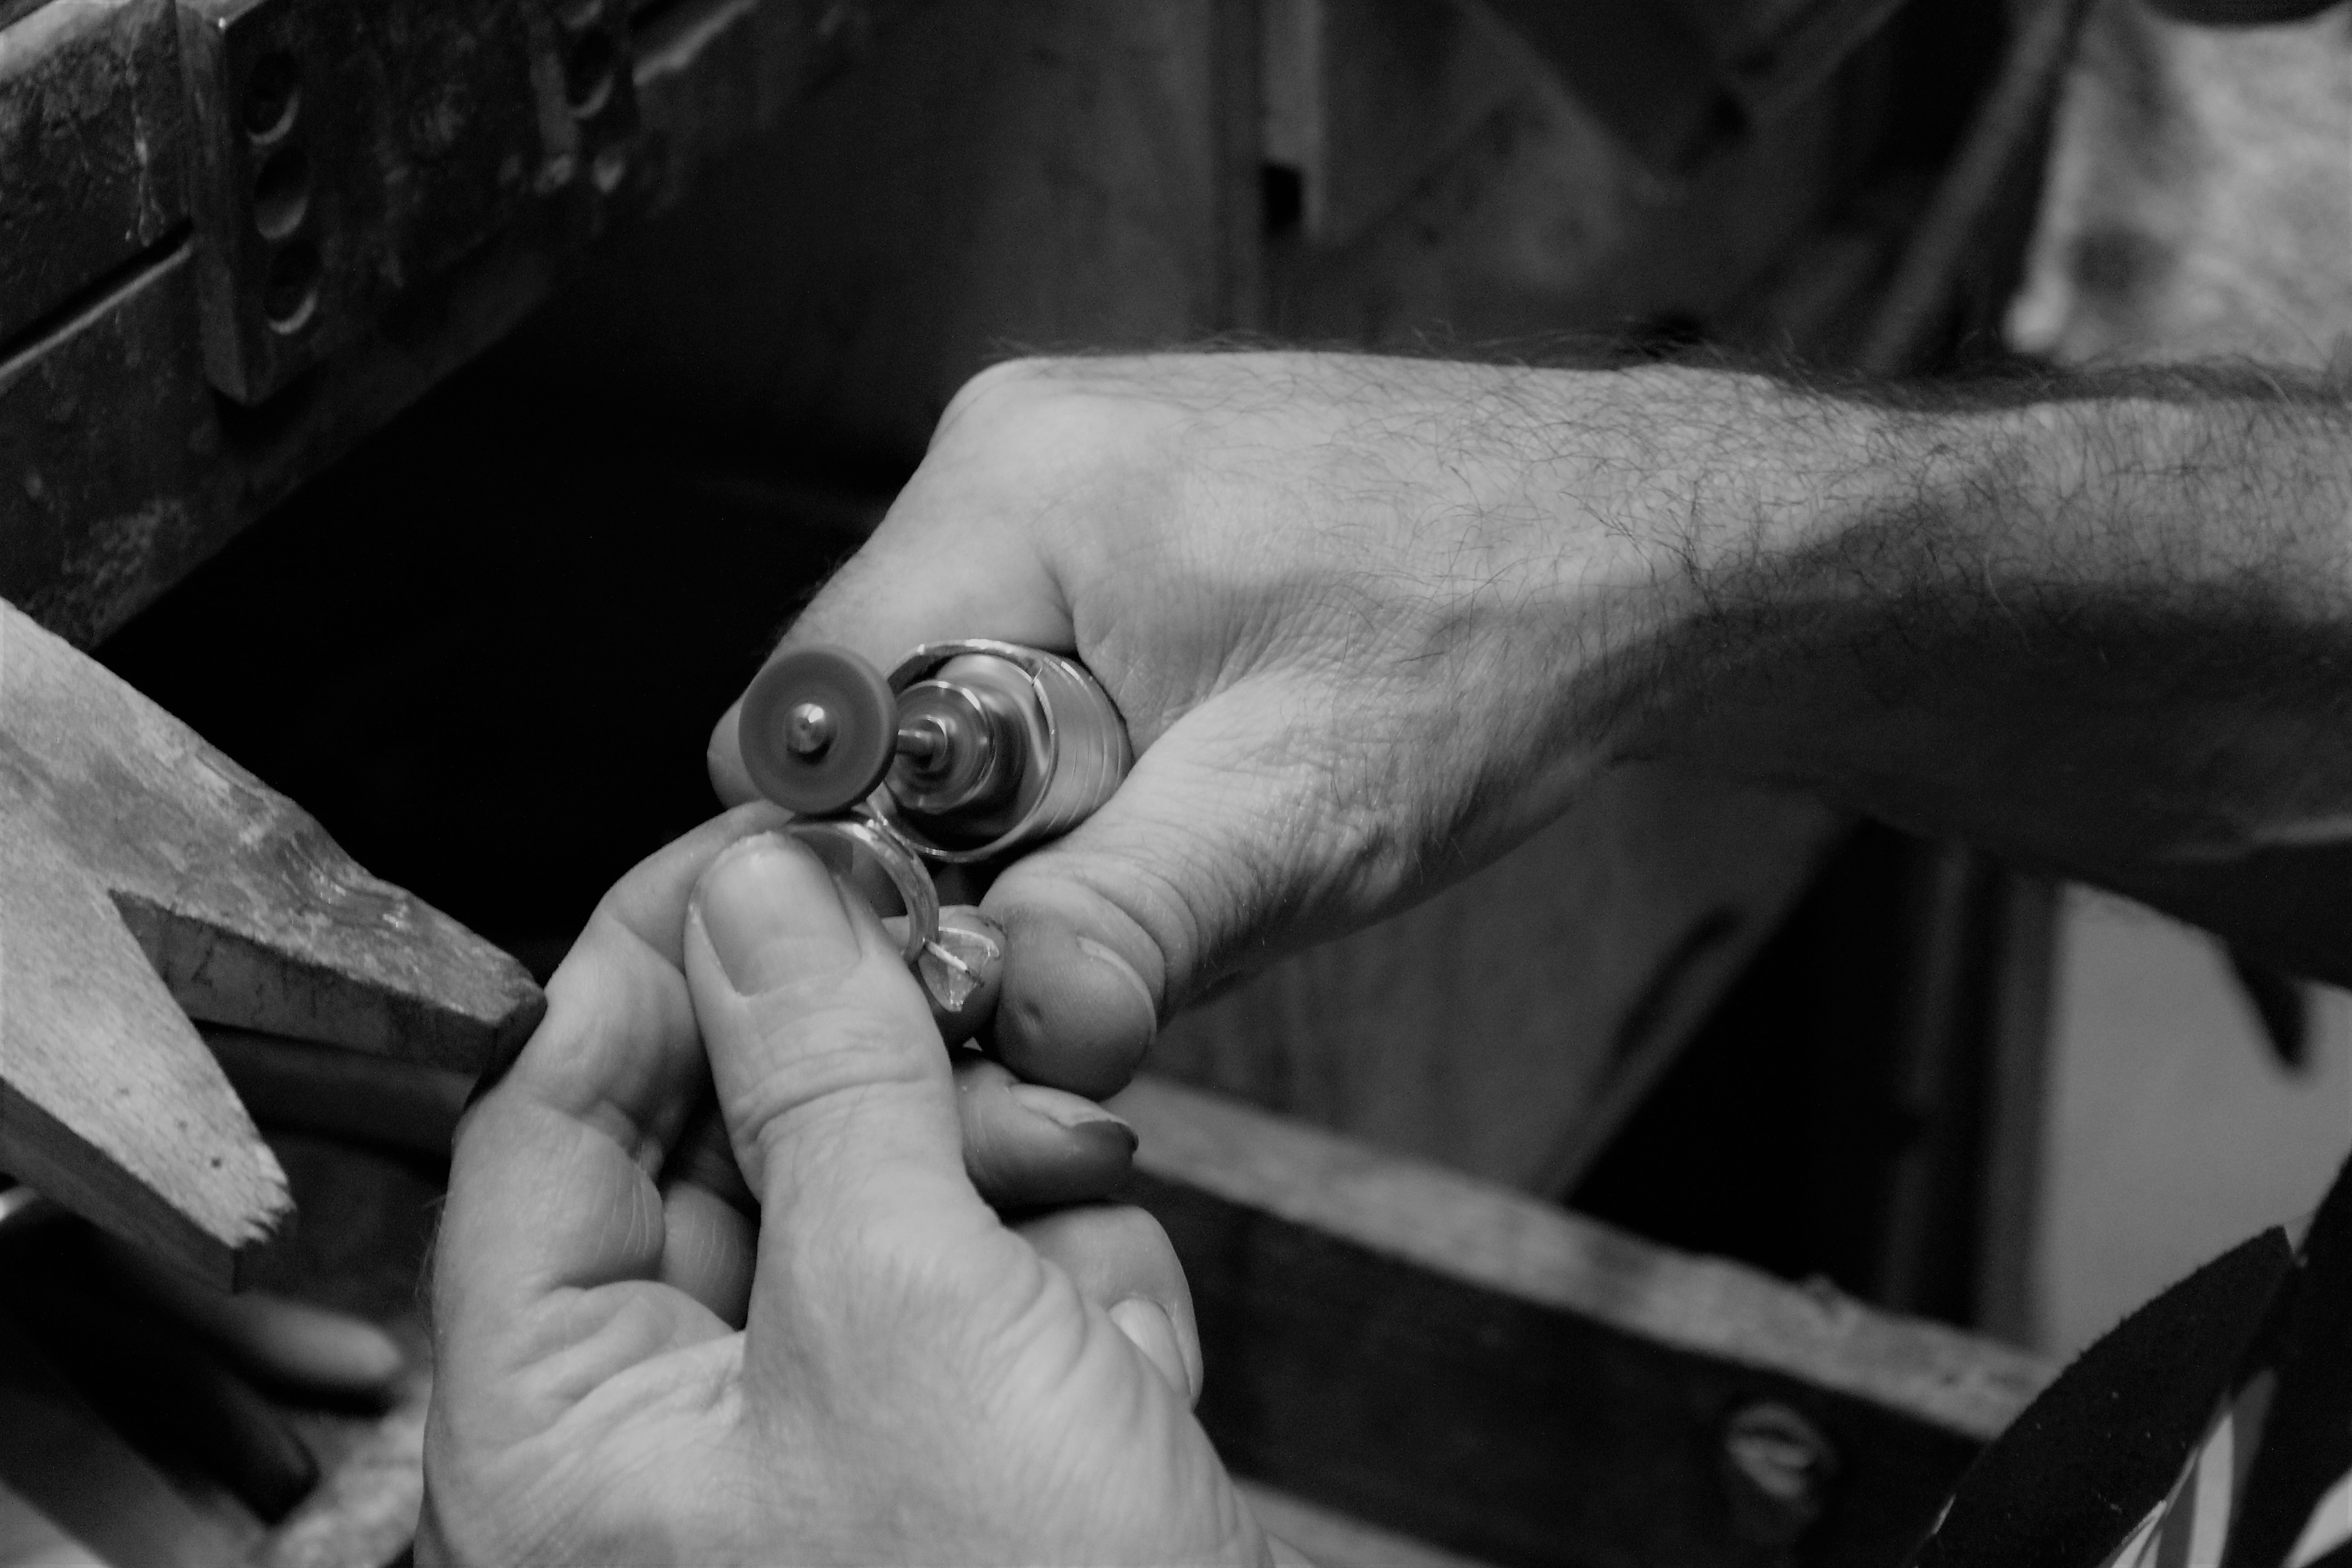 jeweler working on a ring